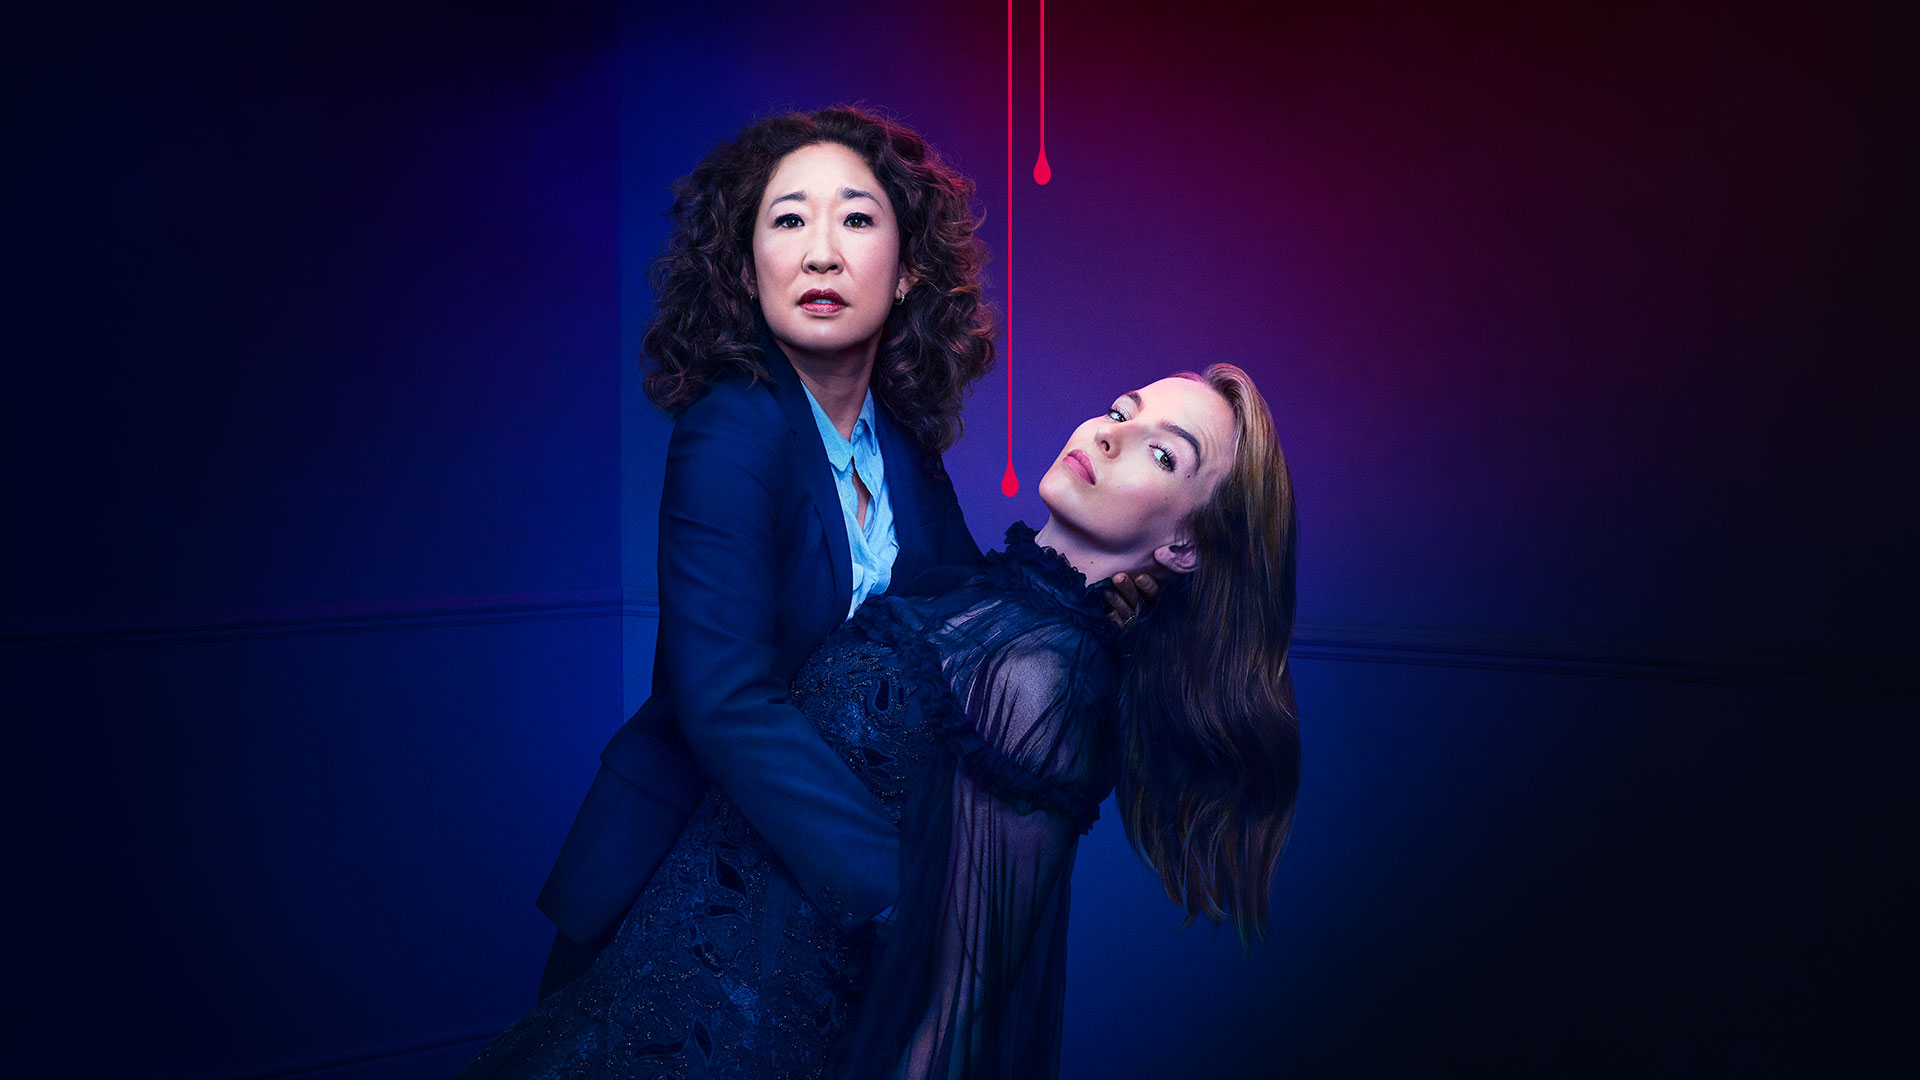 Killing Eve Season 3 Trailer, Release Date, Cast, Plot Spoilers and More Details